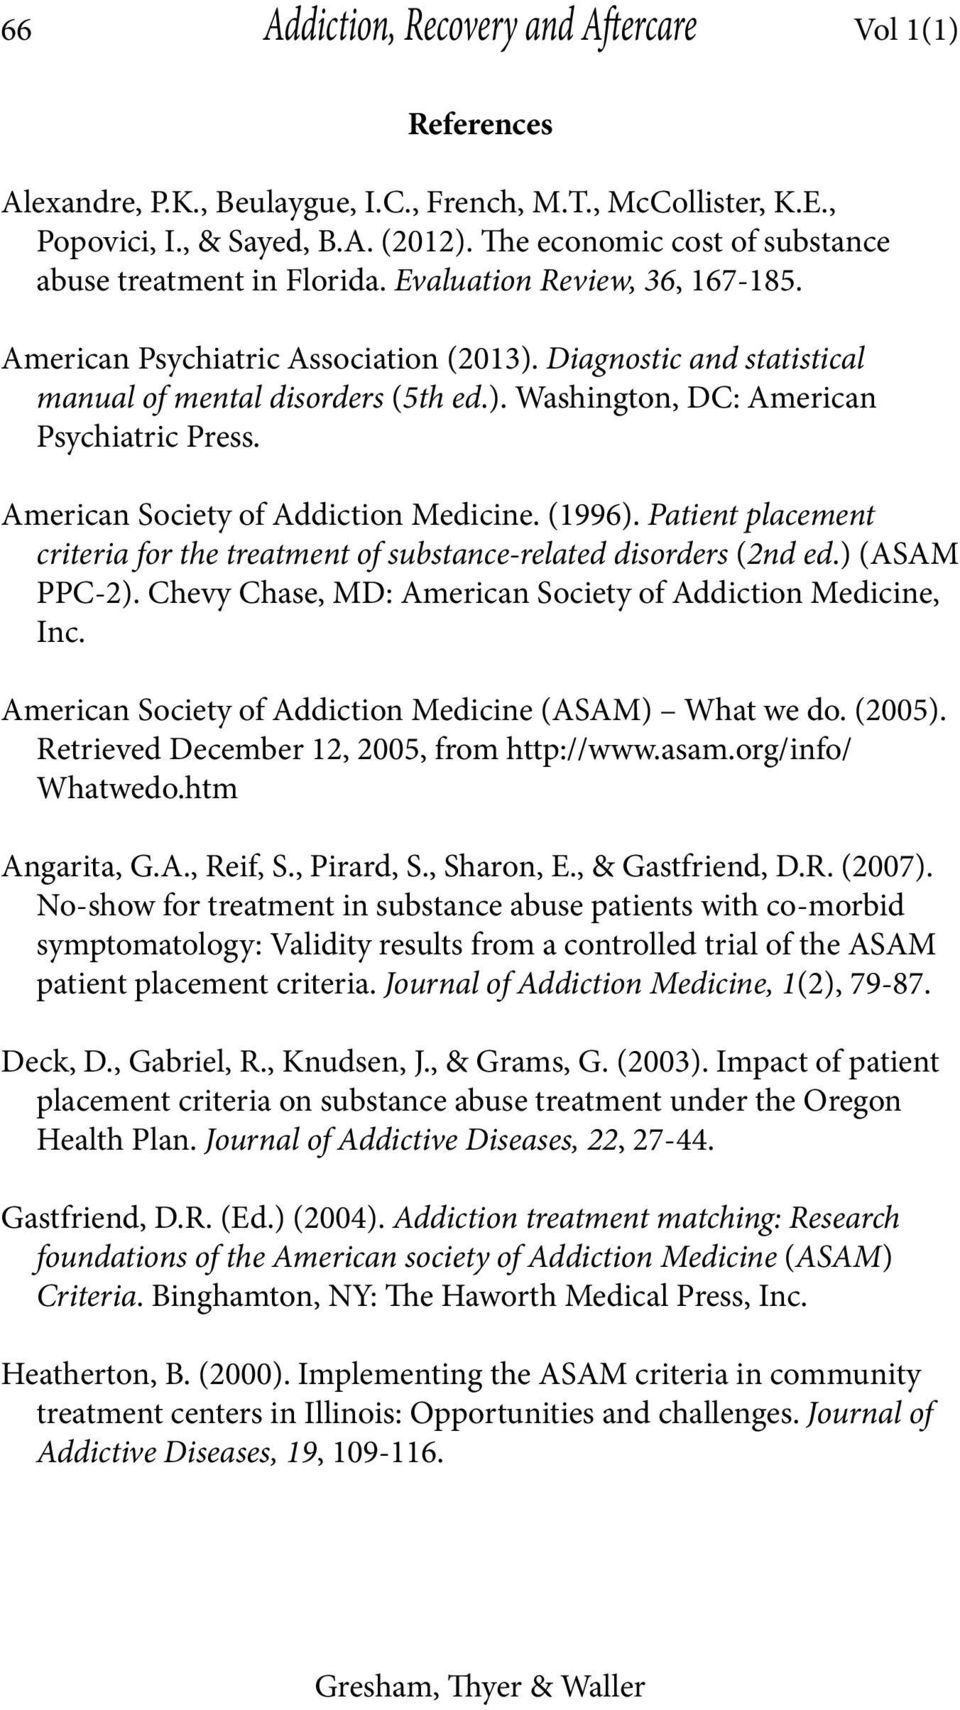 American Society of Addiction Medicine. (1996). Patient placement criteria for the treatment of substance-related disorders (2nd ed.) (ASAM PPC-2).